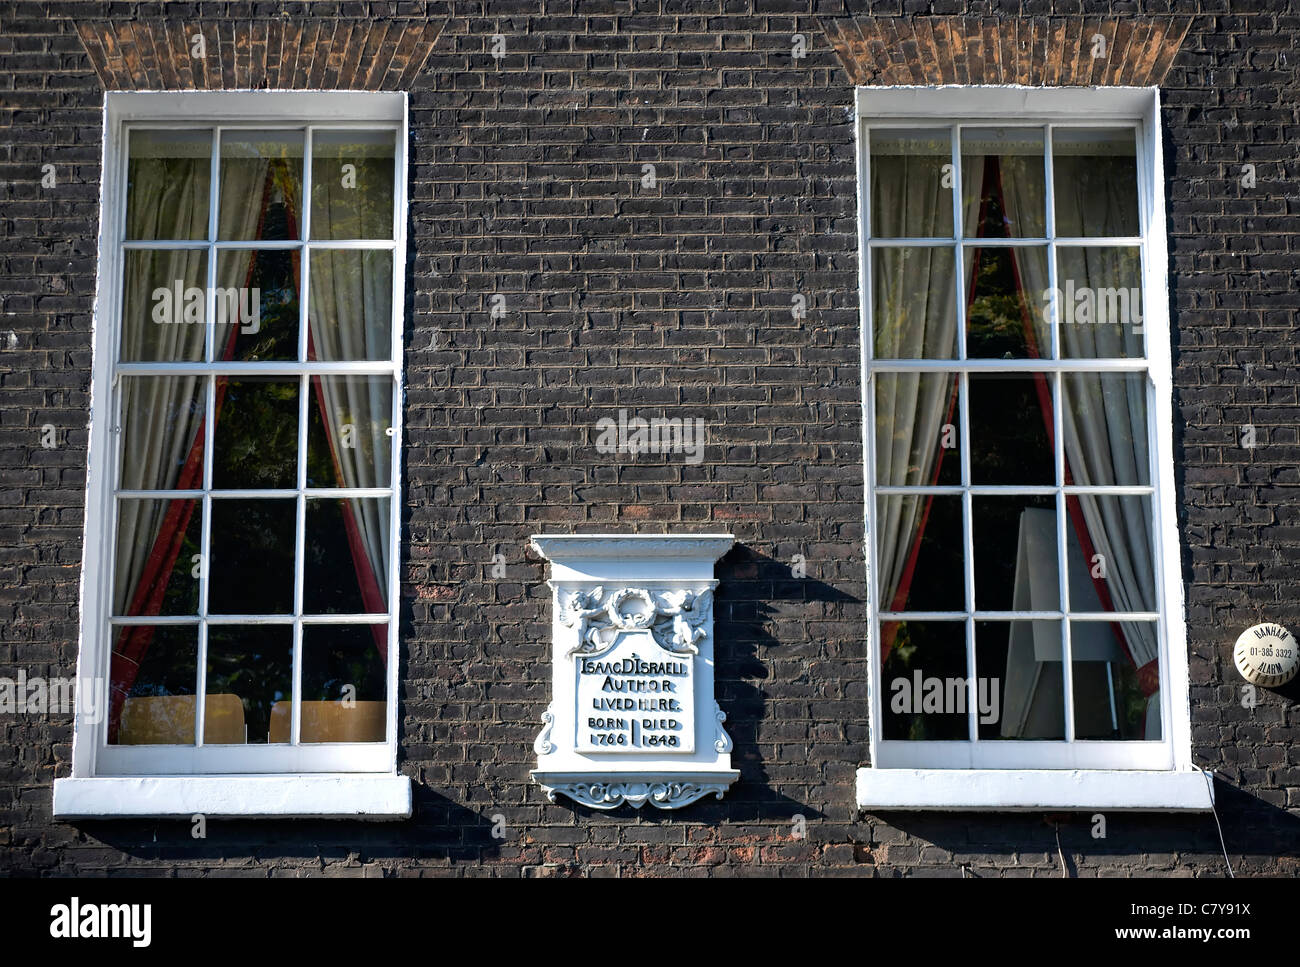 wall plaque marking a home of essayist isaac d'israeli, father of benjamin disraeli, bloomsbury square, london, - Stock Image